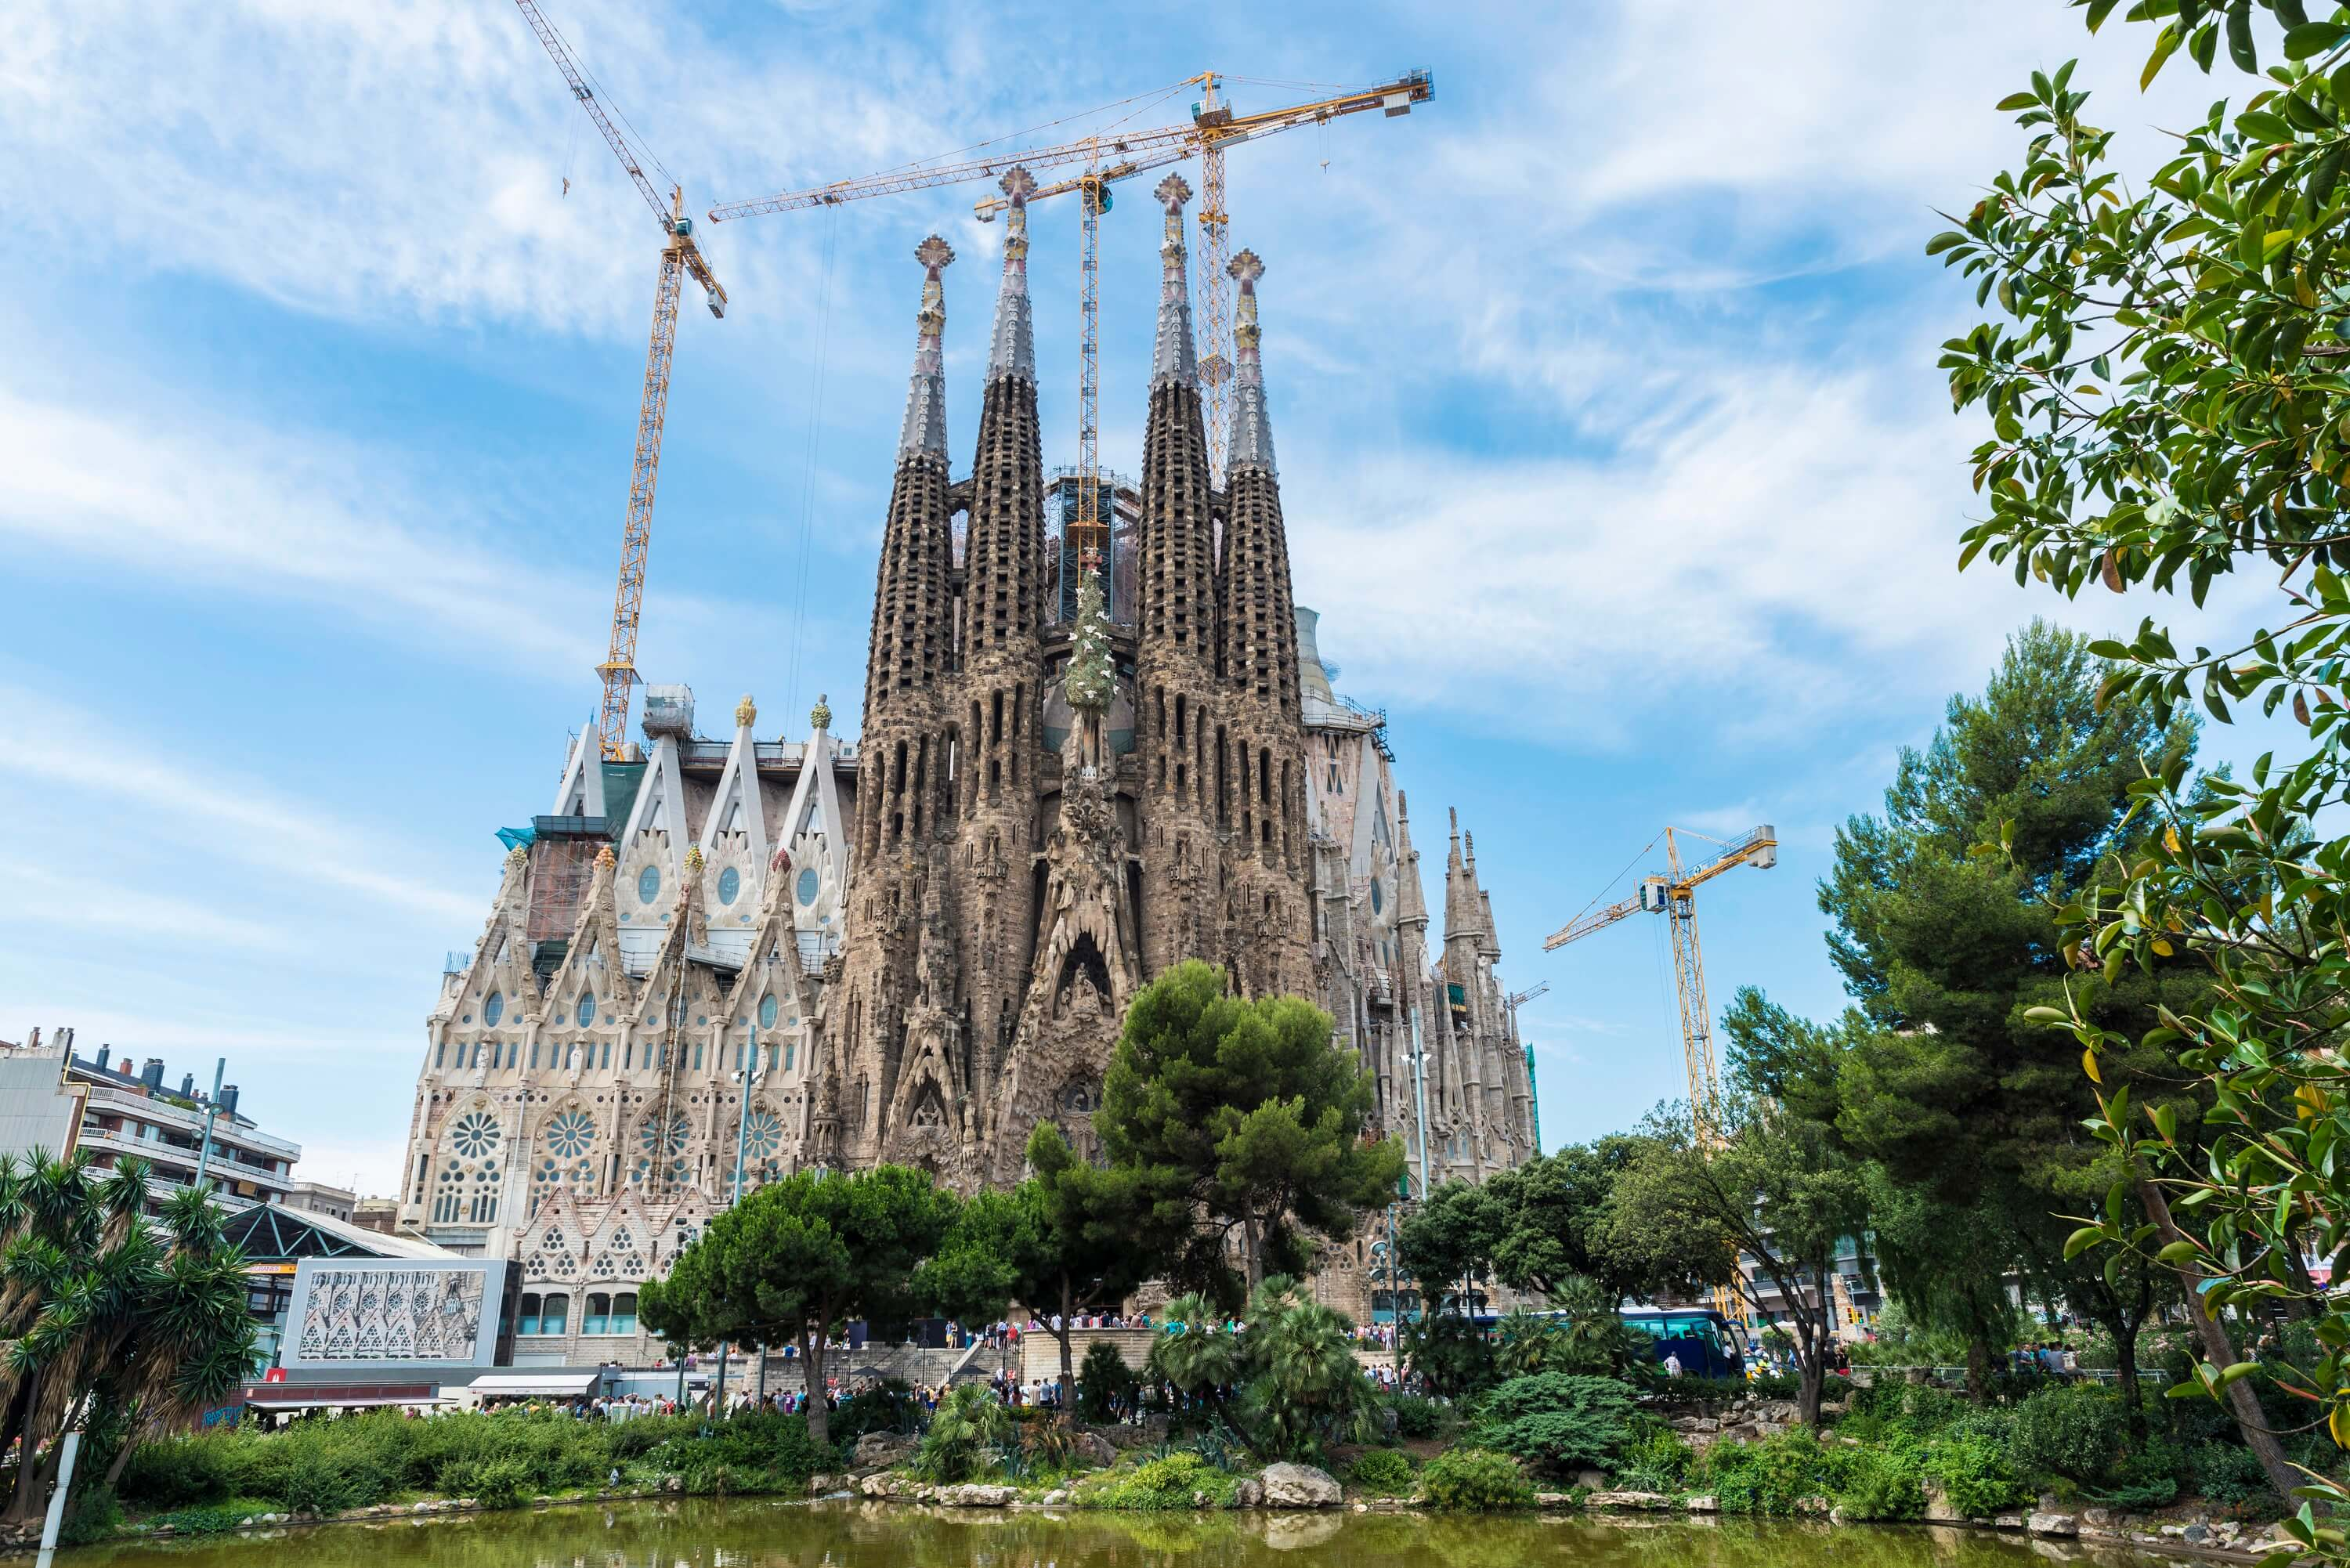 Barcelona Spain Travel - La Sagrada Familia Walking Tour